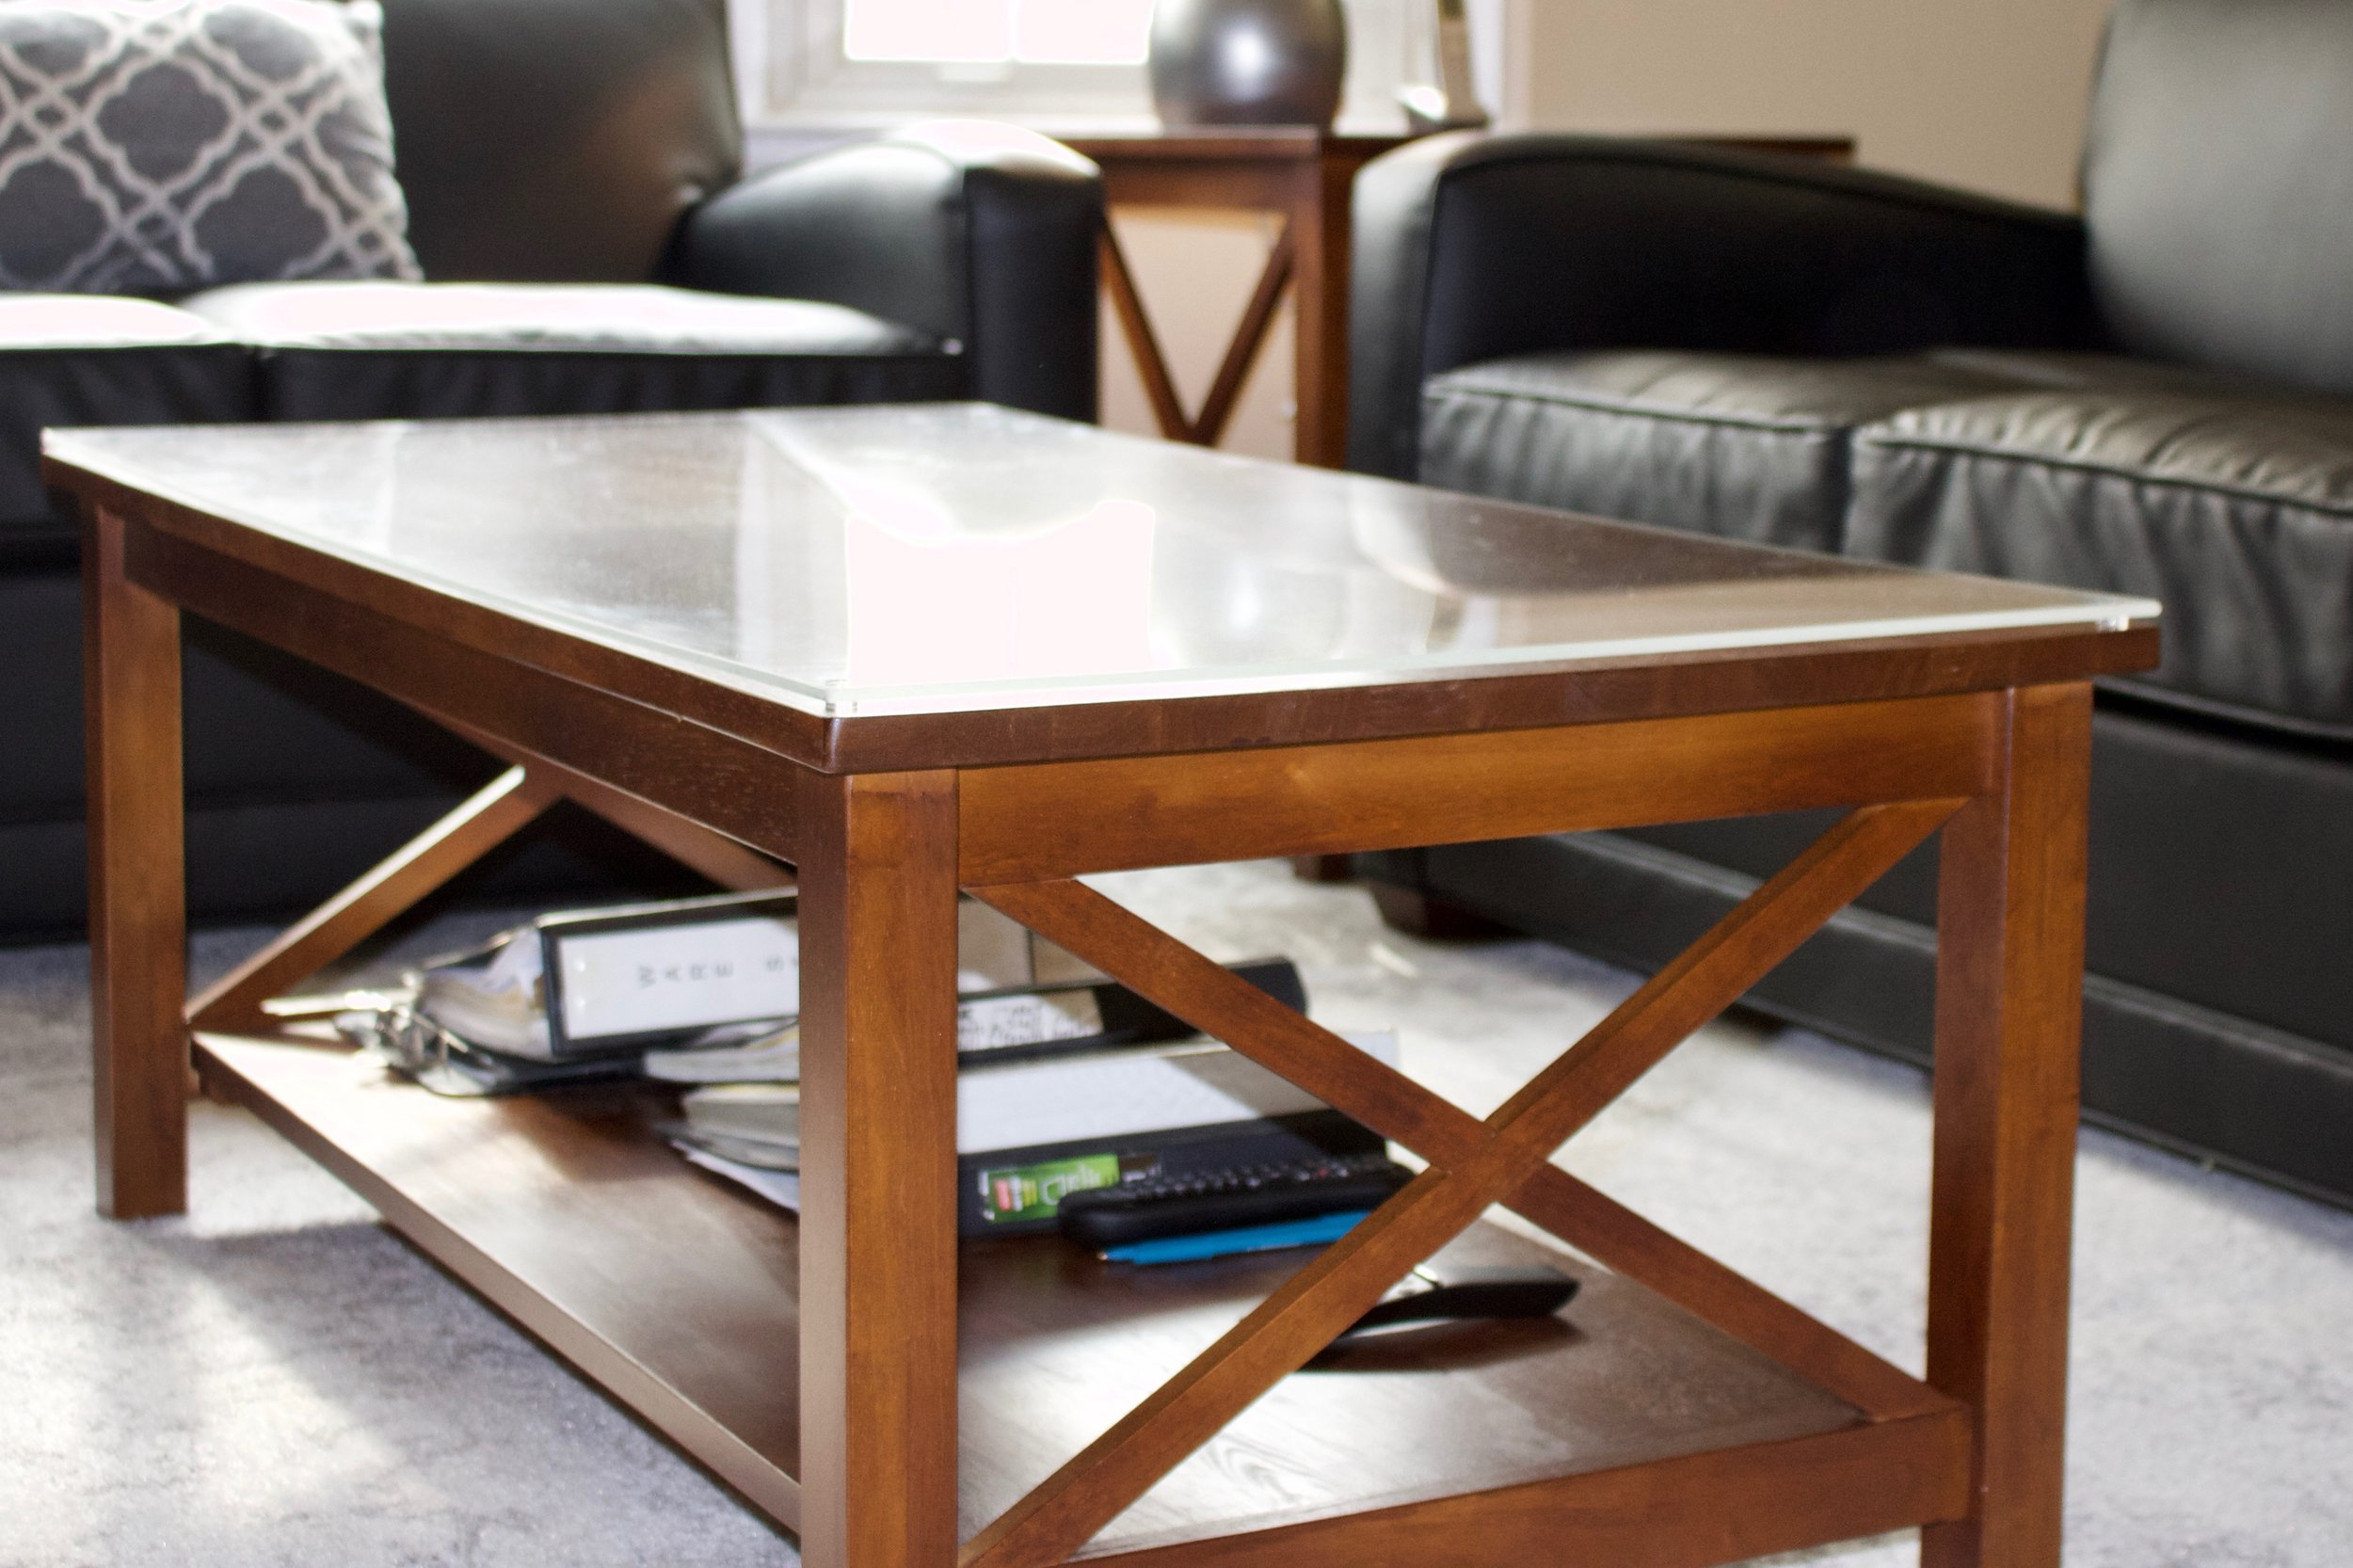 Crossings coffee table (Contract $273) with protective plexiglass topping